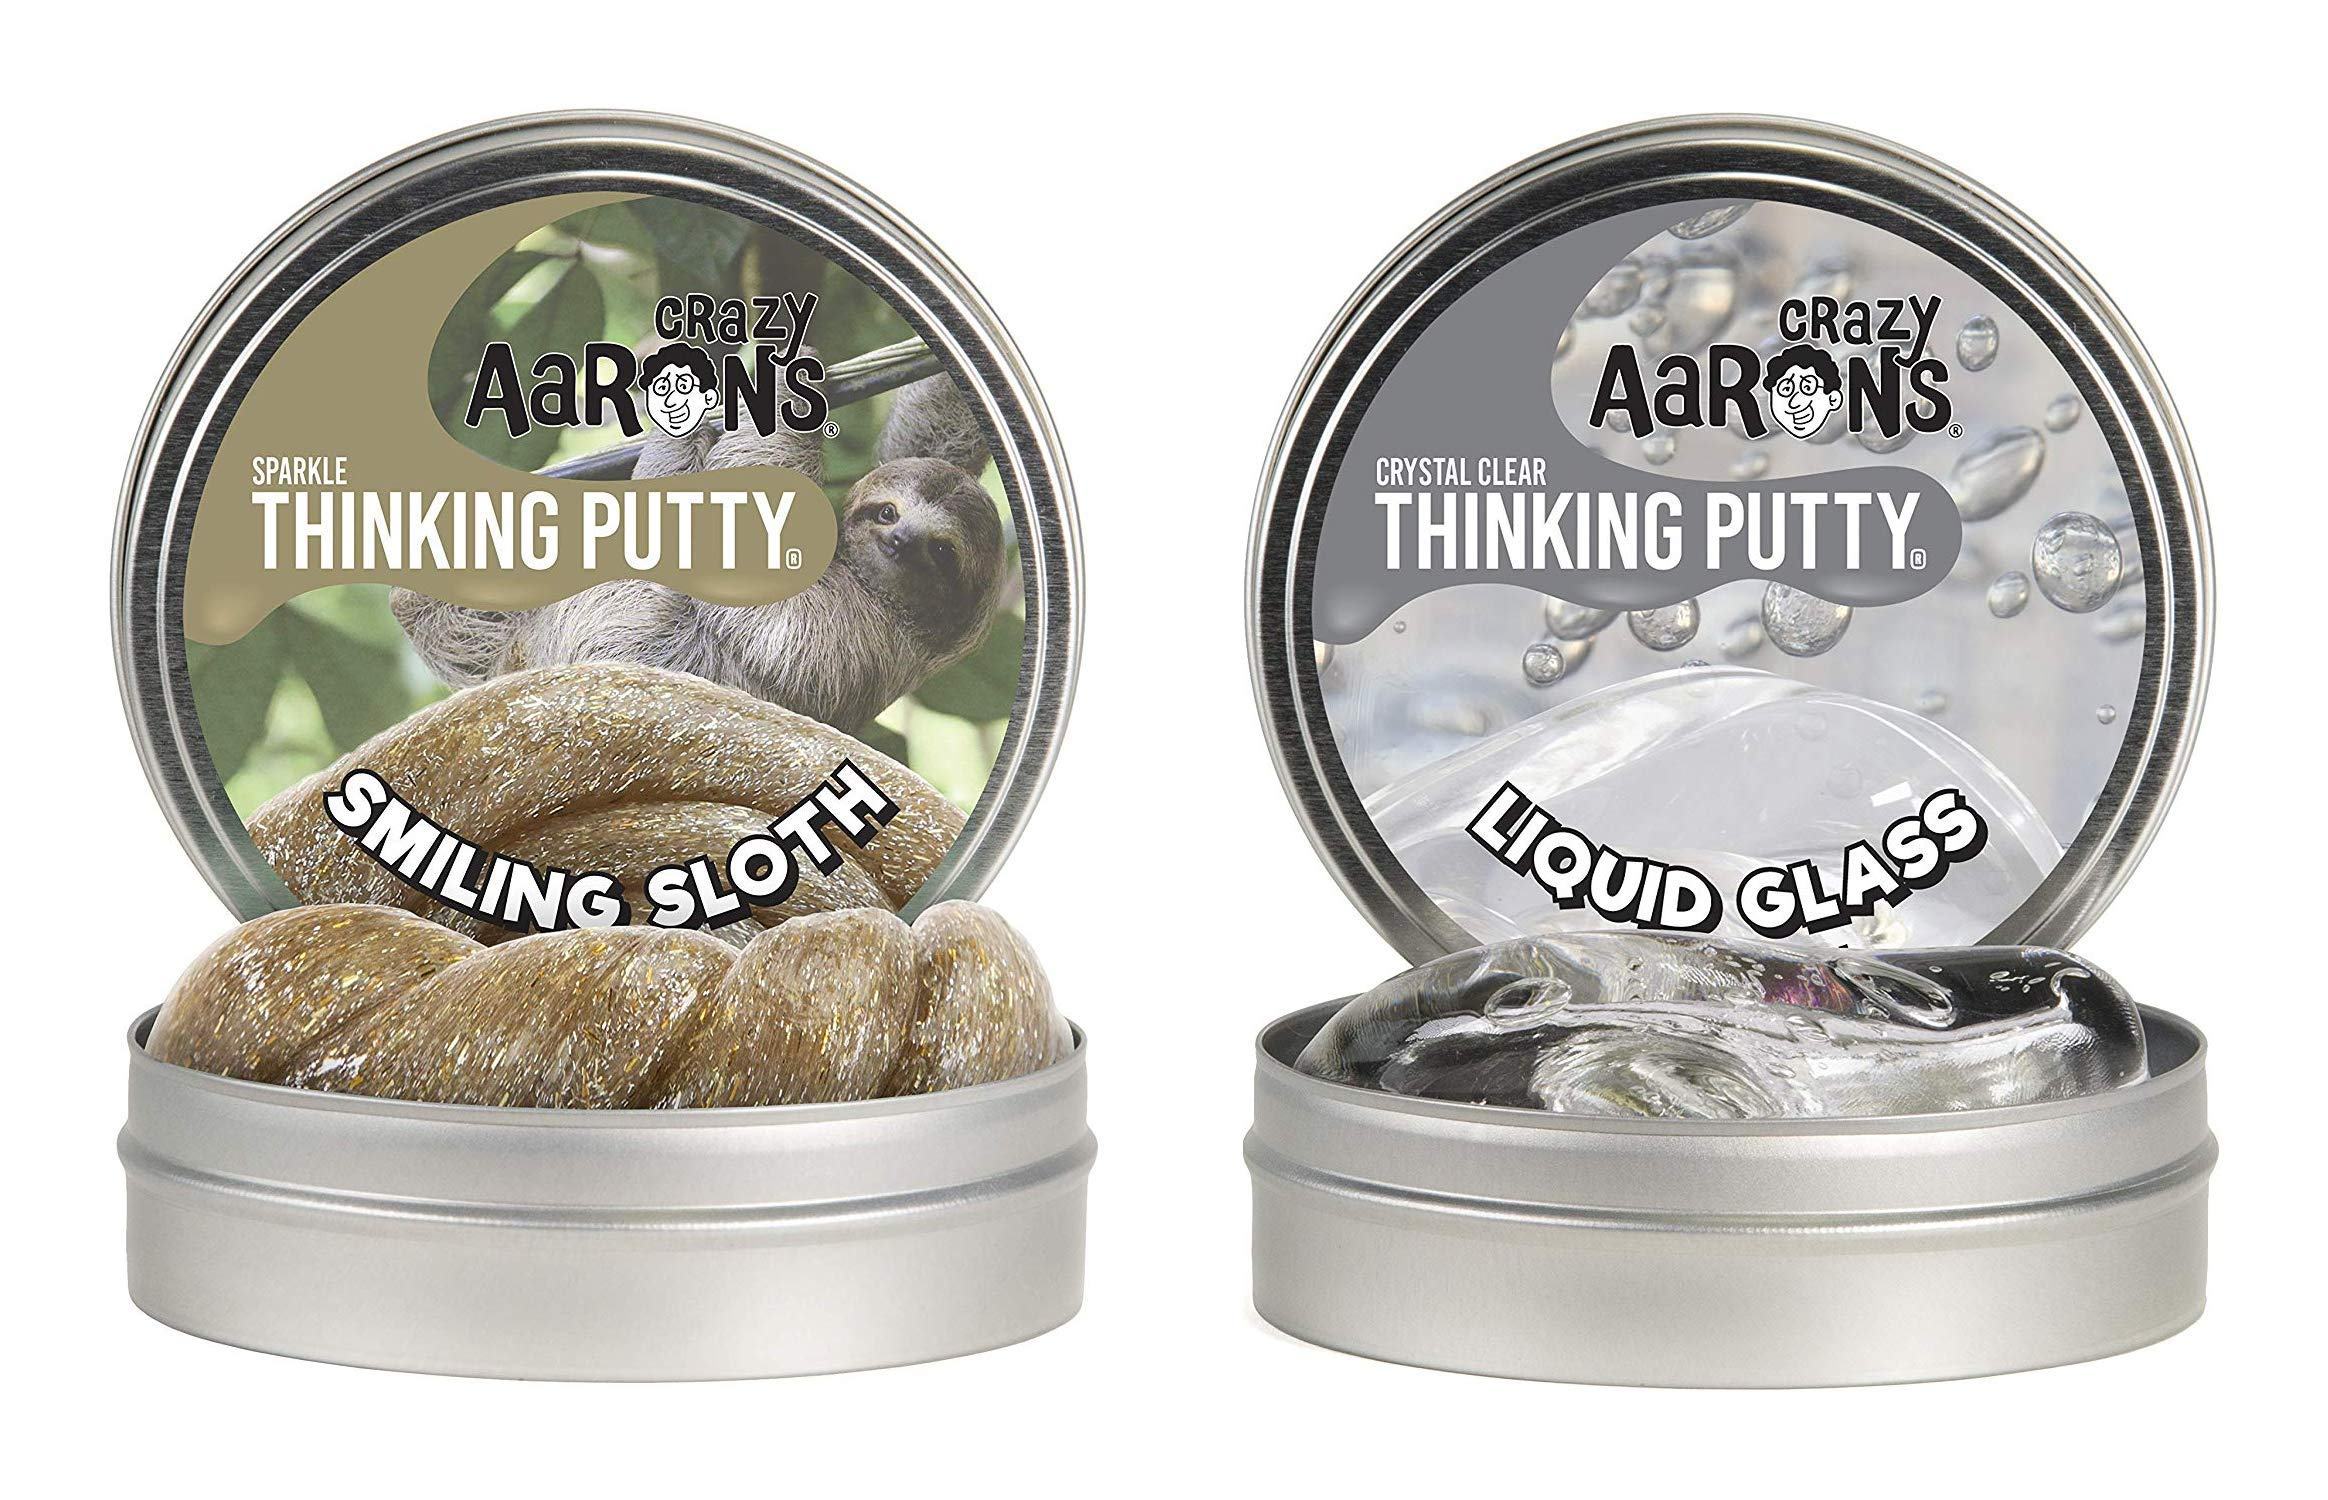 Crazy Aaron's Thinking Putty 4'' Tin Double Pack (6.4 oz) - Liquid Glass andSmiling Sloth- Crystal-Clear, See-Through and Sparkle Glow Putty - Never Dries Out by Crazy Aaron's